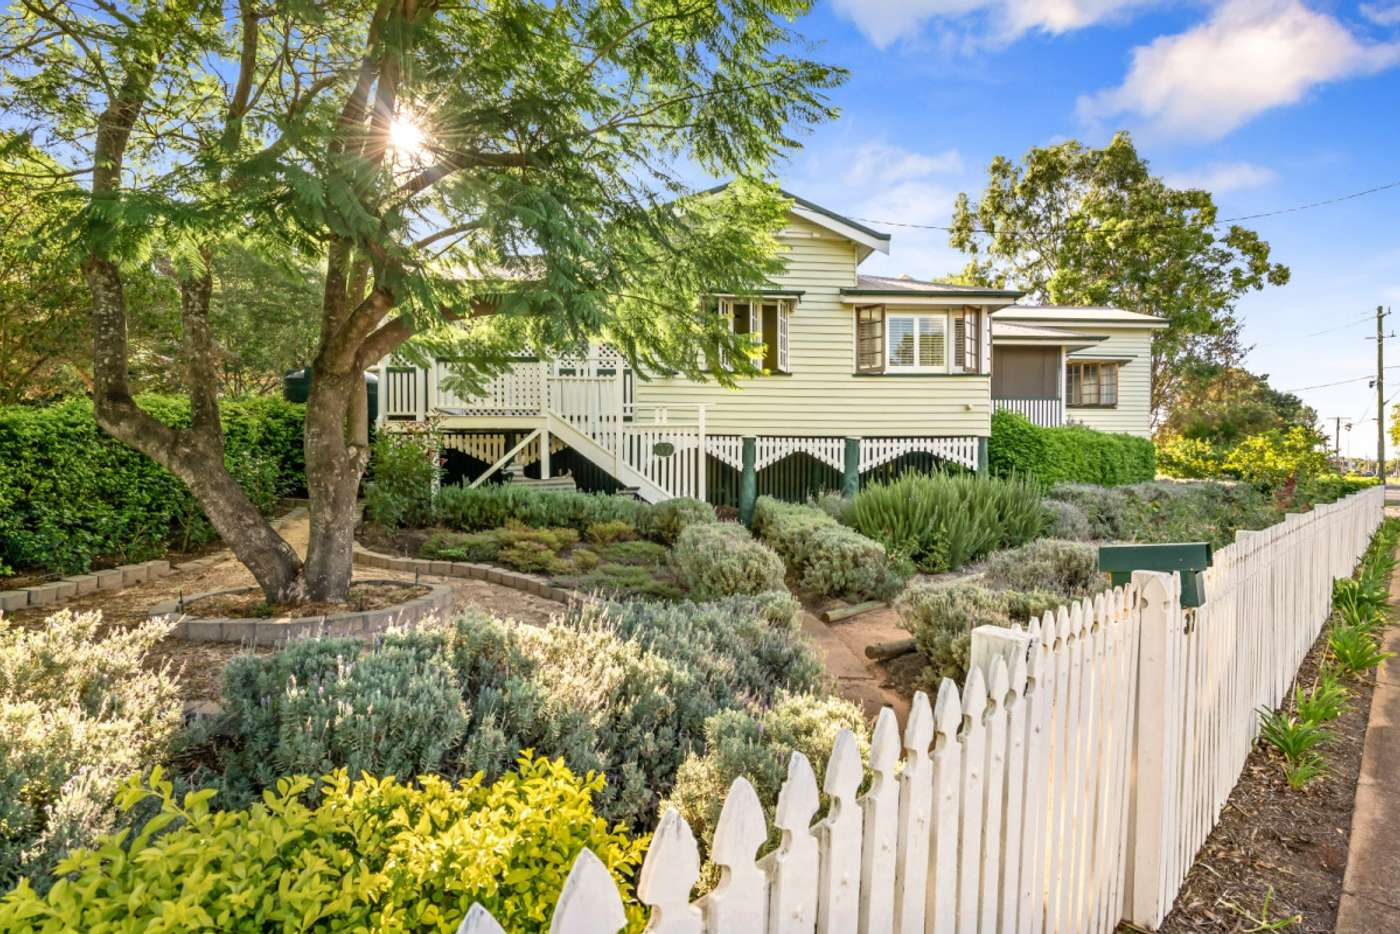 Main view of Homely house listing, 37 Kitchener Street, East Toowoomba QLD 4350